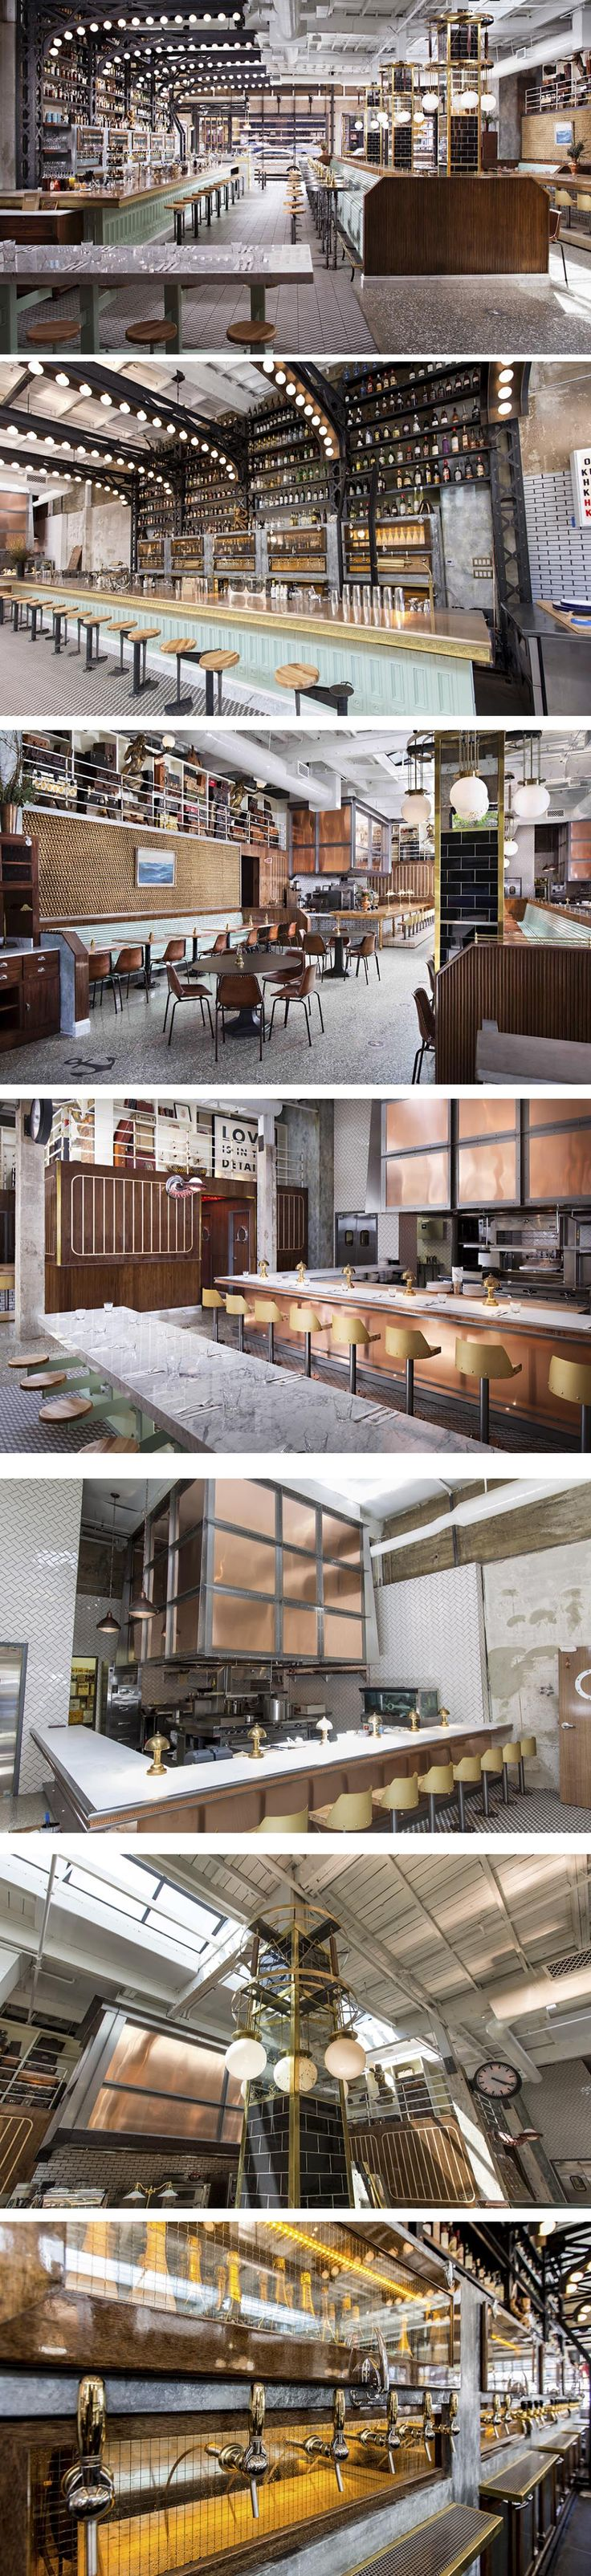 Ironside Fish & Oyster by Basile Studio                                                                                                                                                                                 More